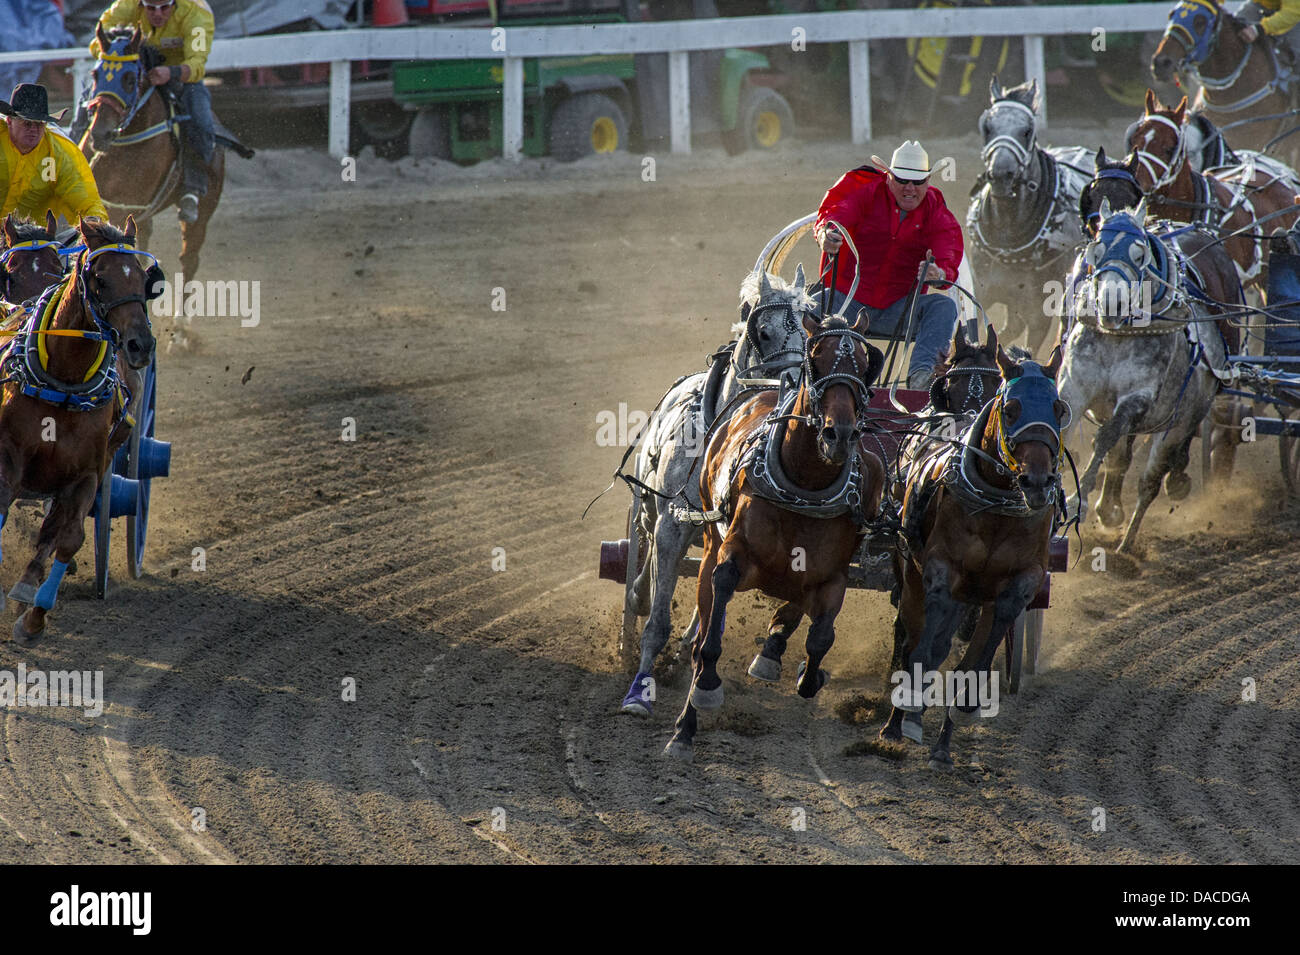 chuckwagon-race-at-the-calgary-stampede-DACDGA.jpg